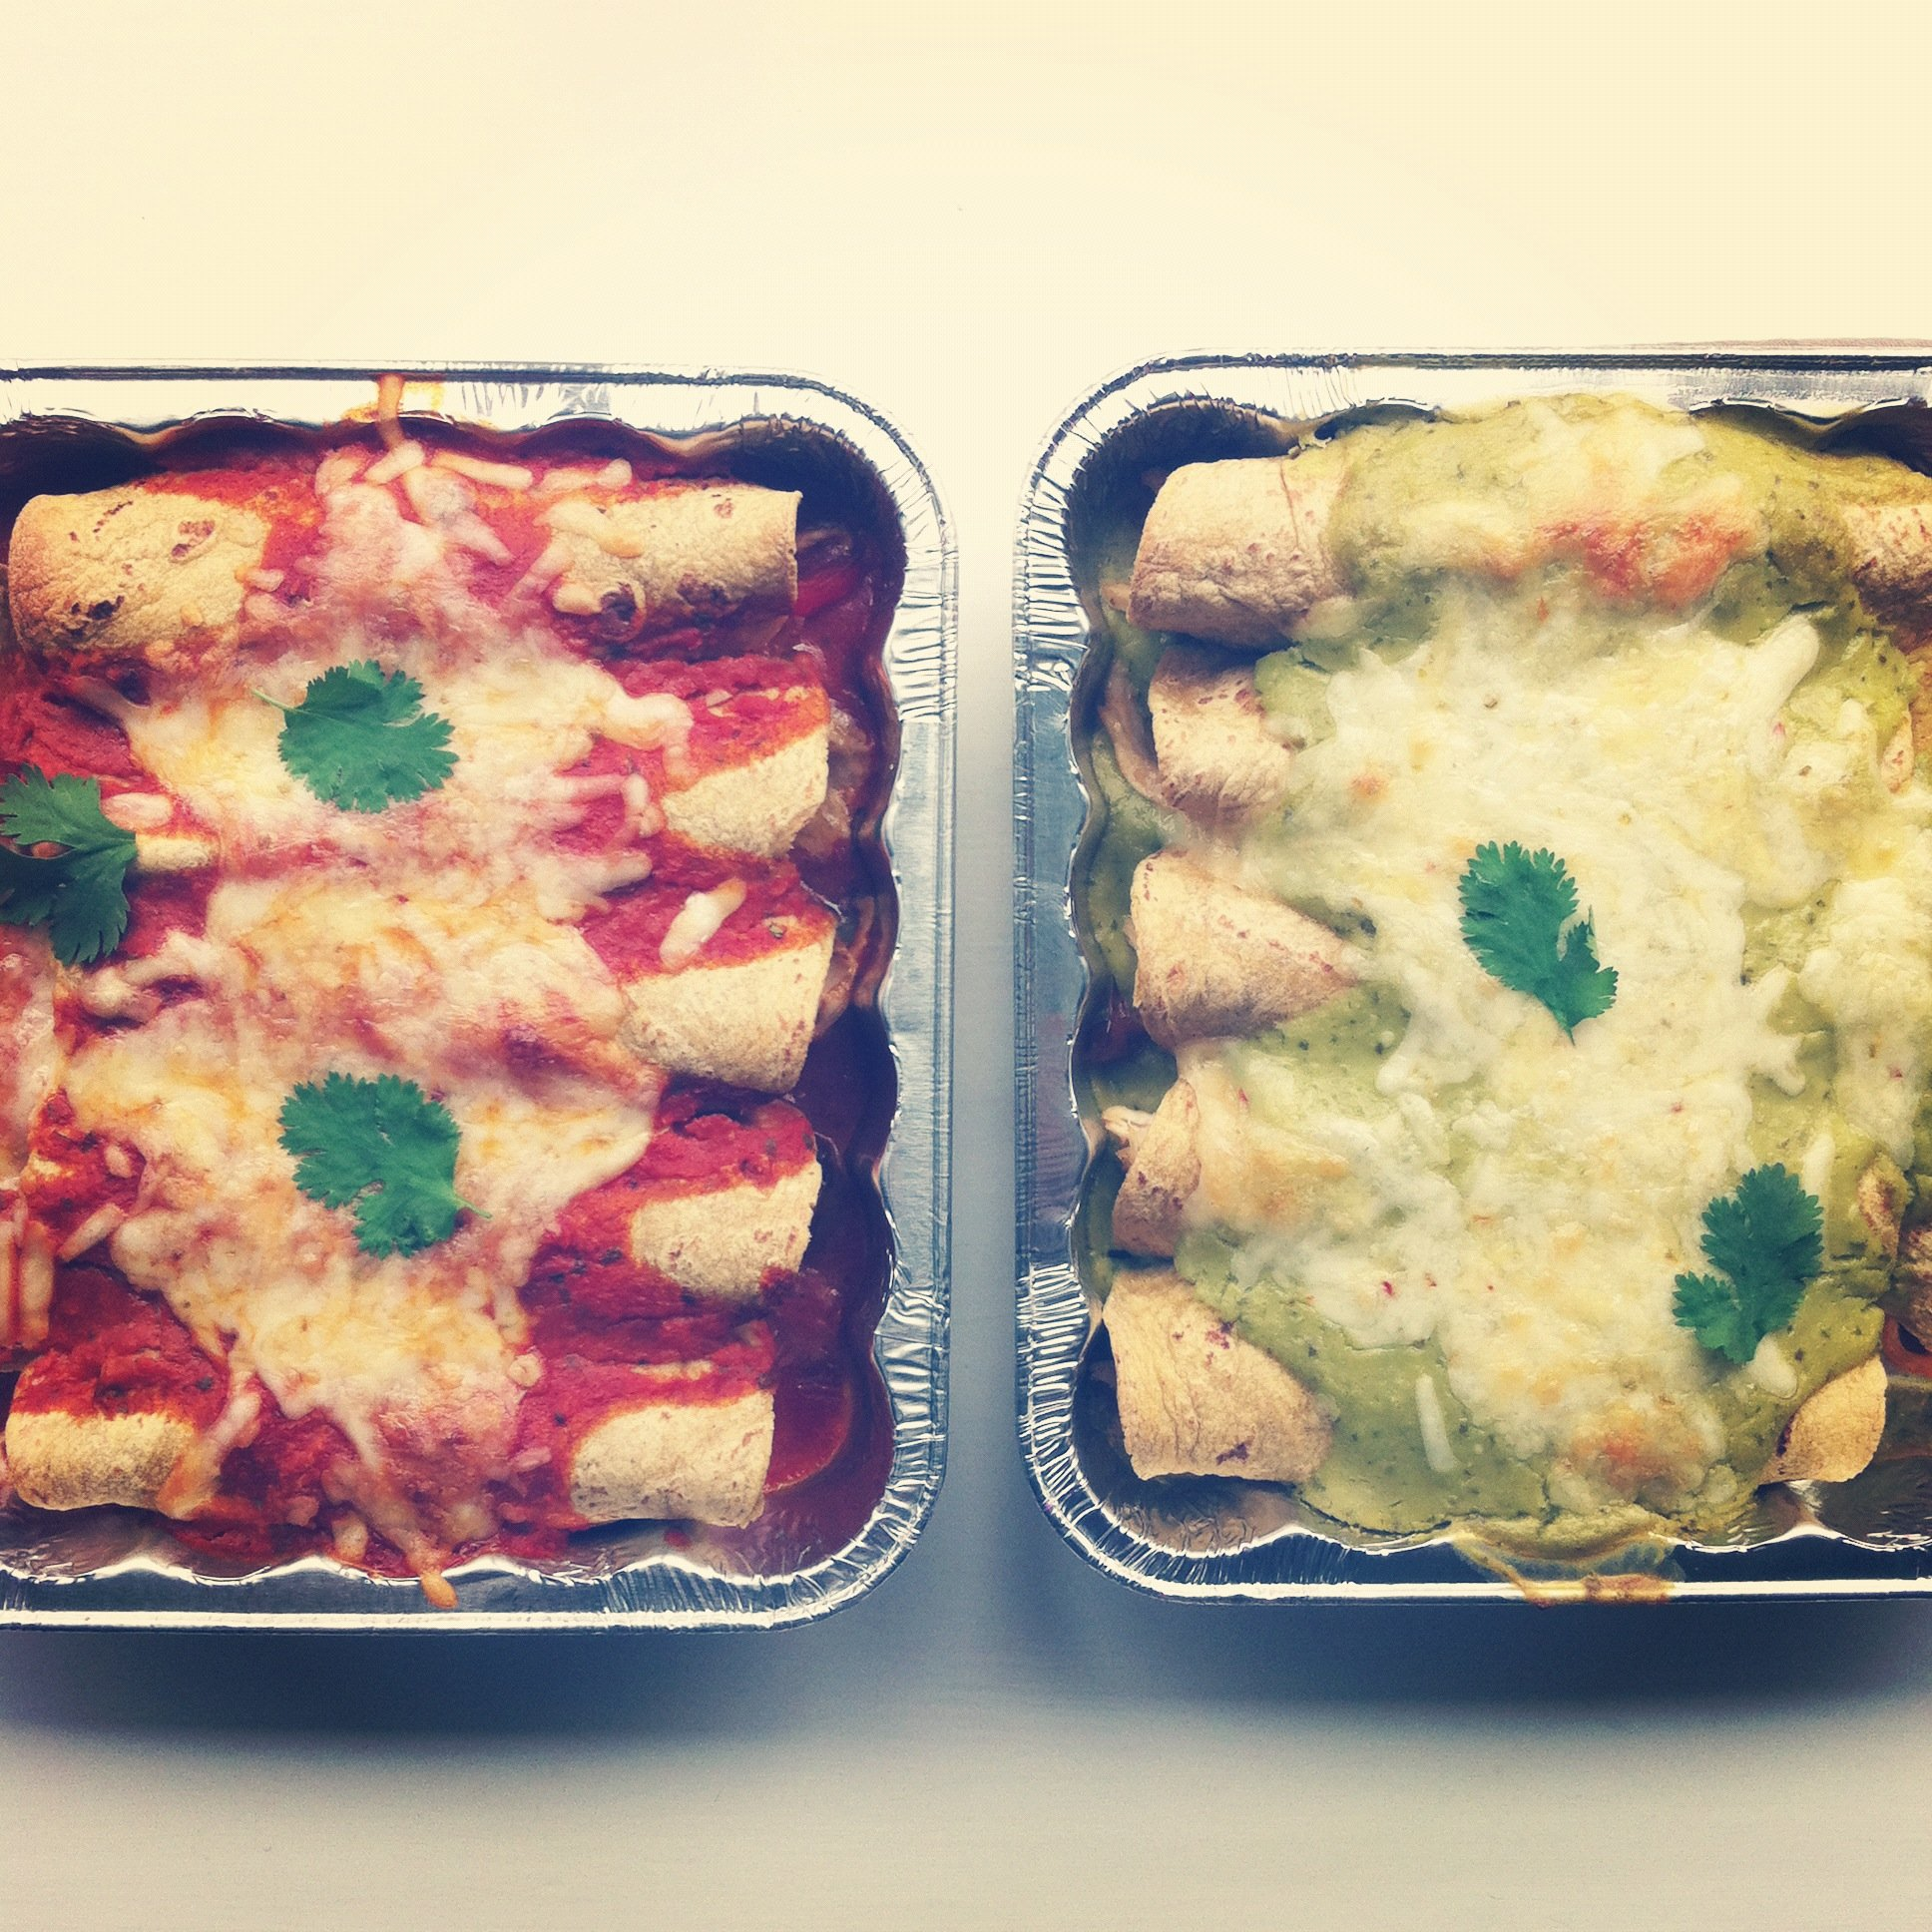 Freezer Enchiladas | The Fauxamartha